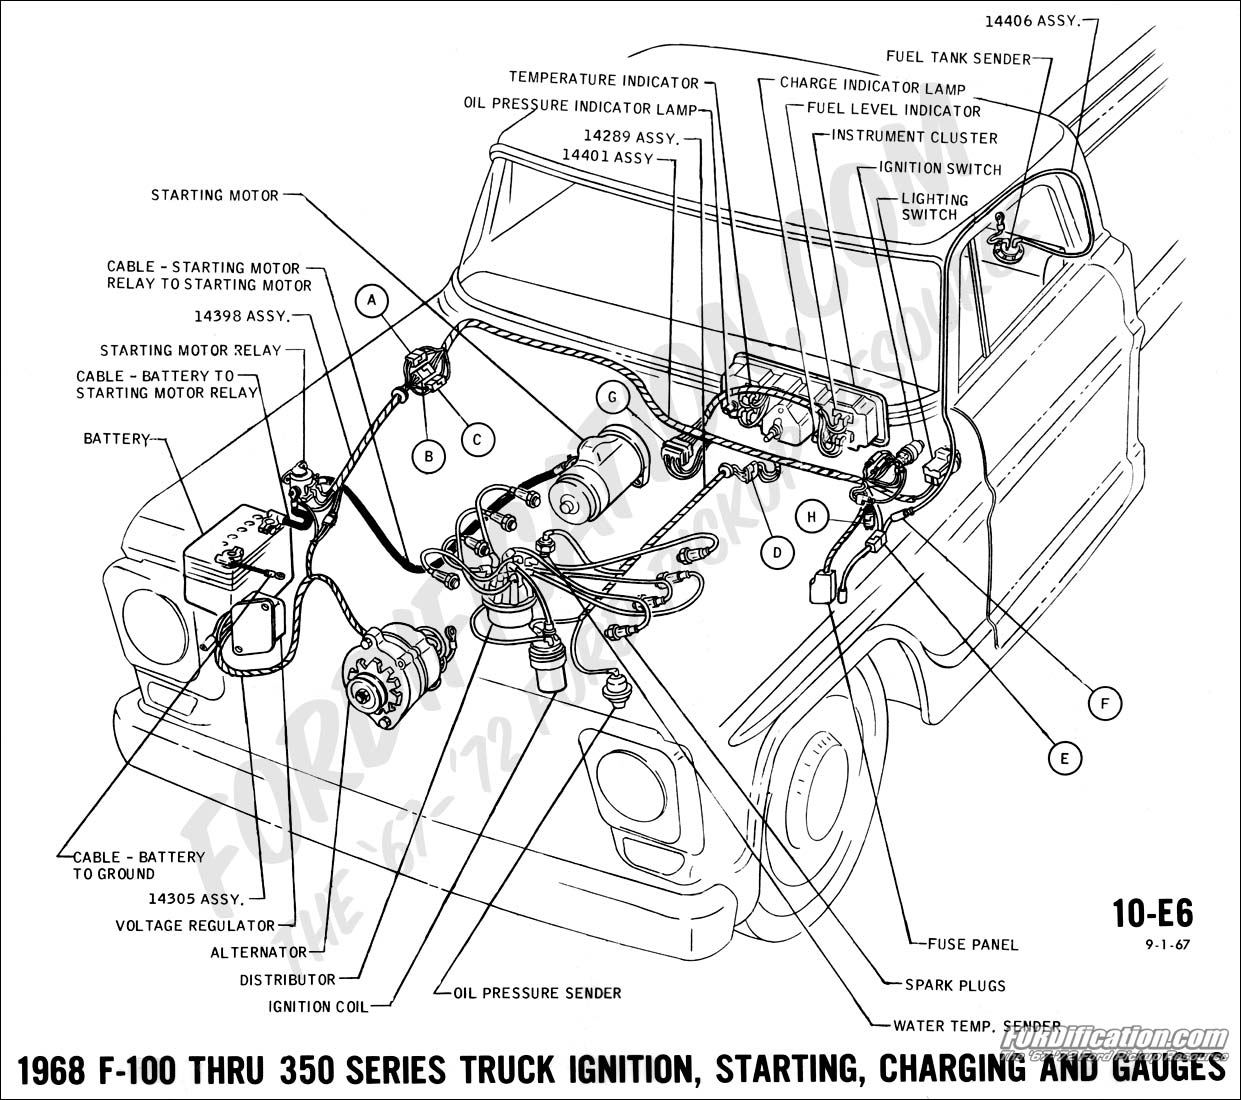 2008 Nissan Frontier Headlight Wiring Diagram